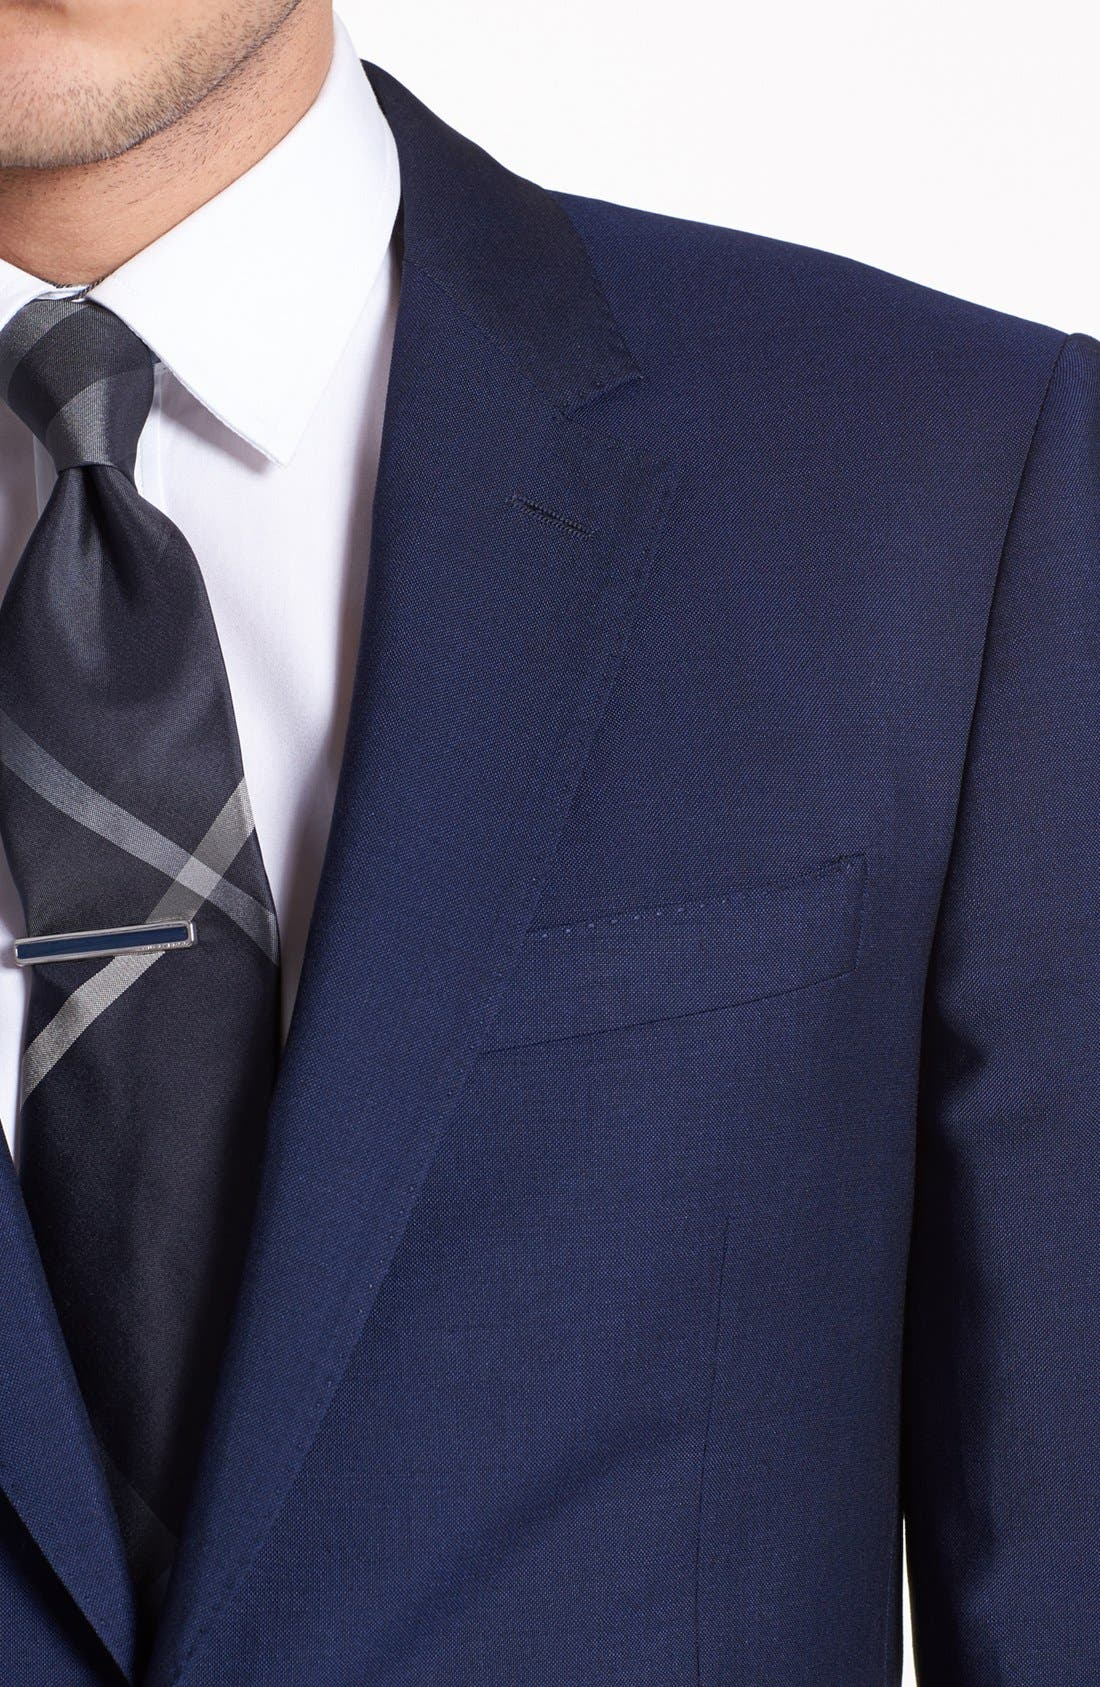 Alternate Image 2  - Burberry London Navy Wool & Mohair Suit